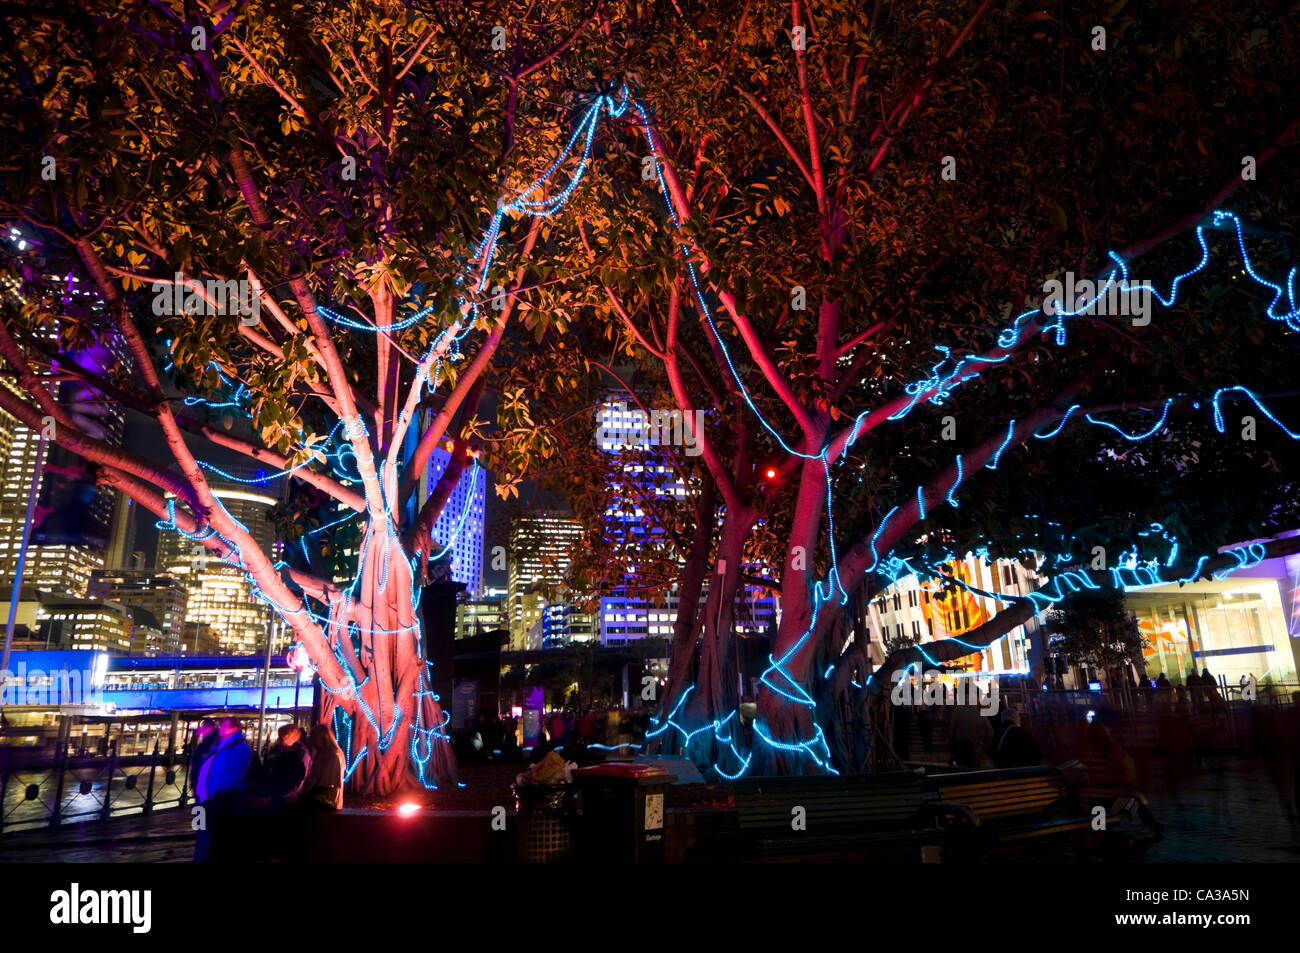 Sydney, Australia, Wednesday May 30, 2012. Vivid Sydney Festival transforms the city into an explosion of light - Stock Image